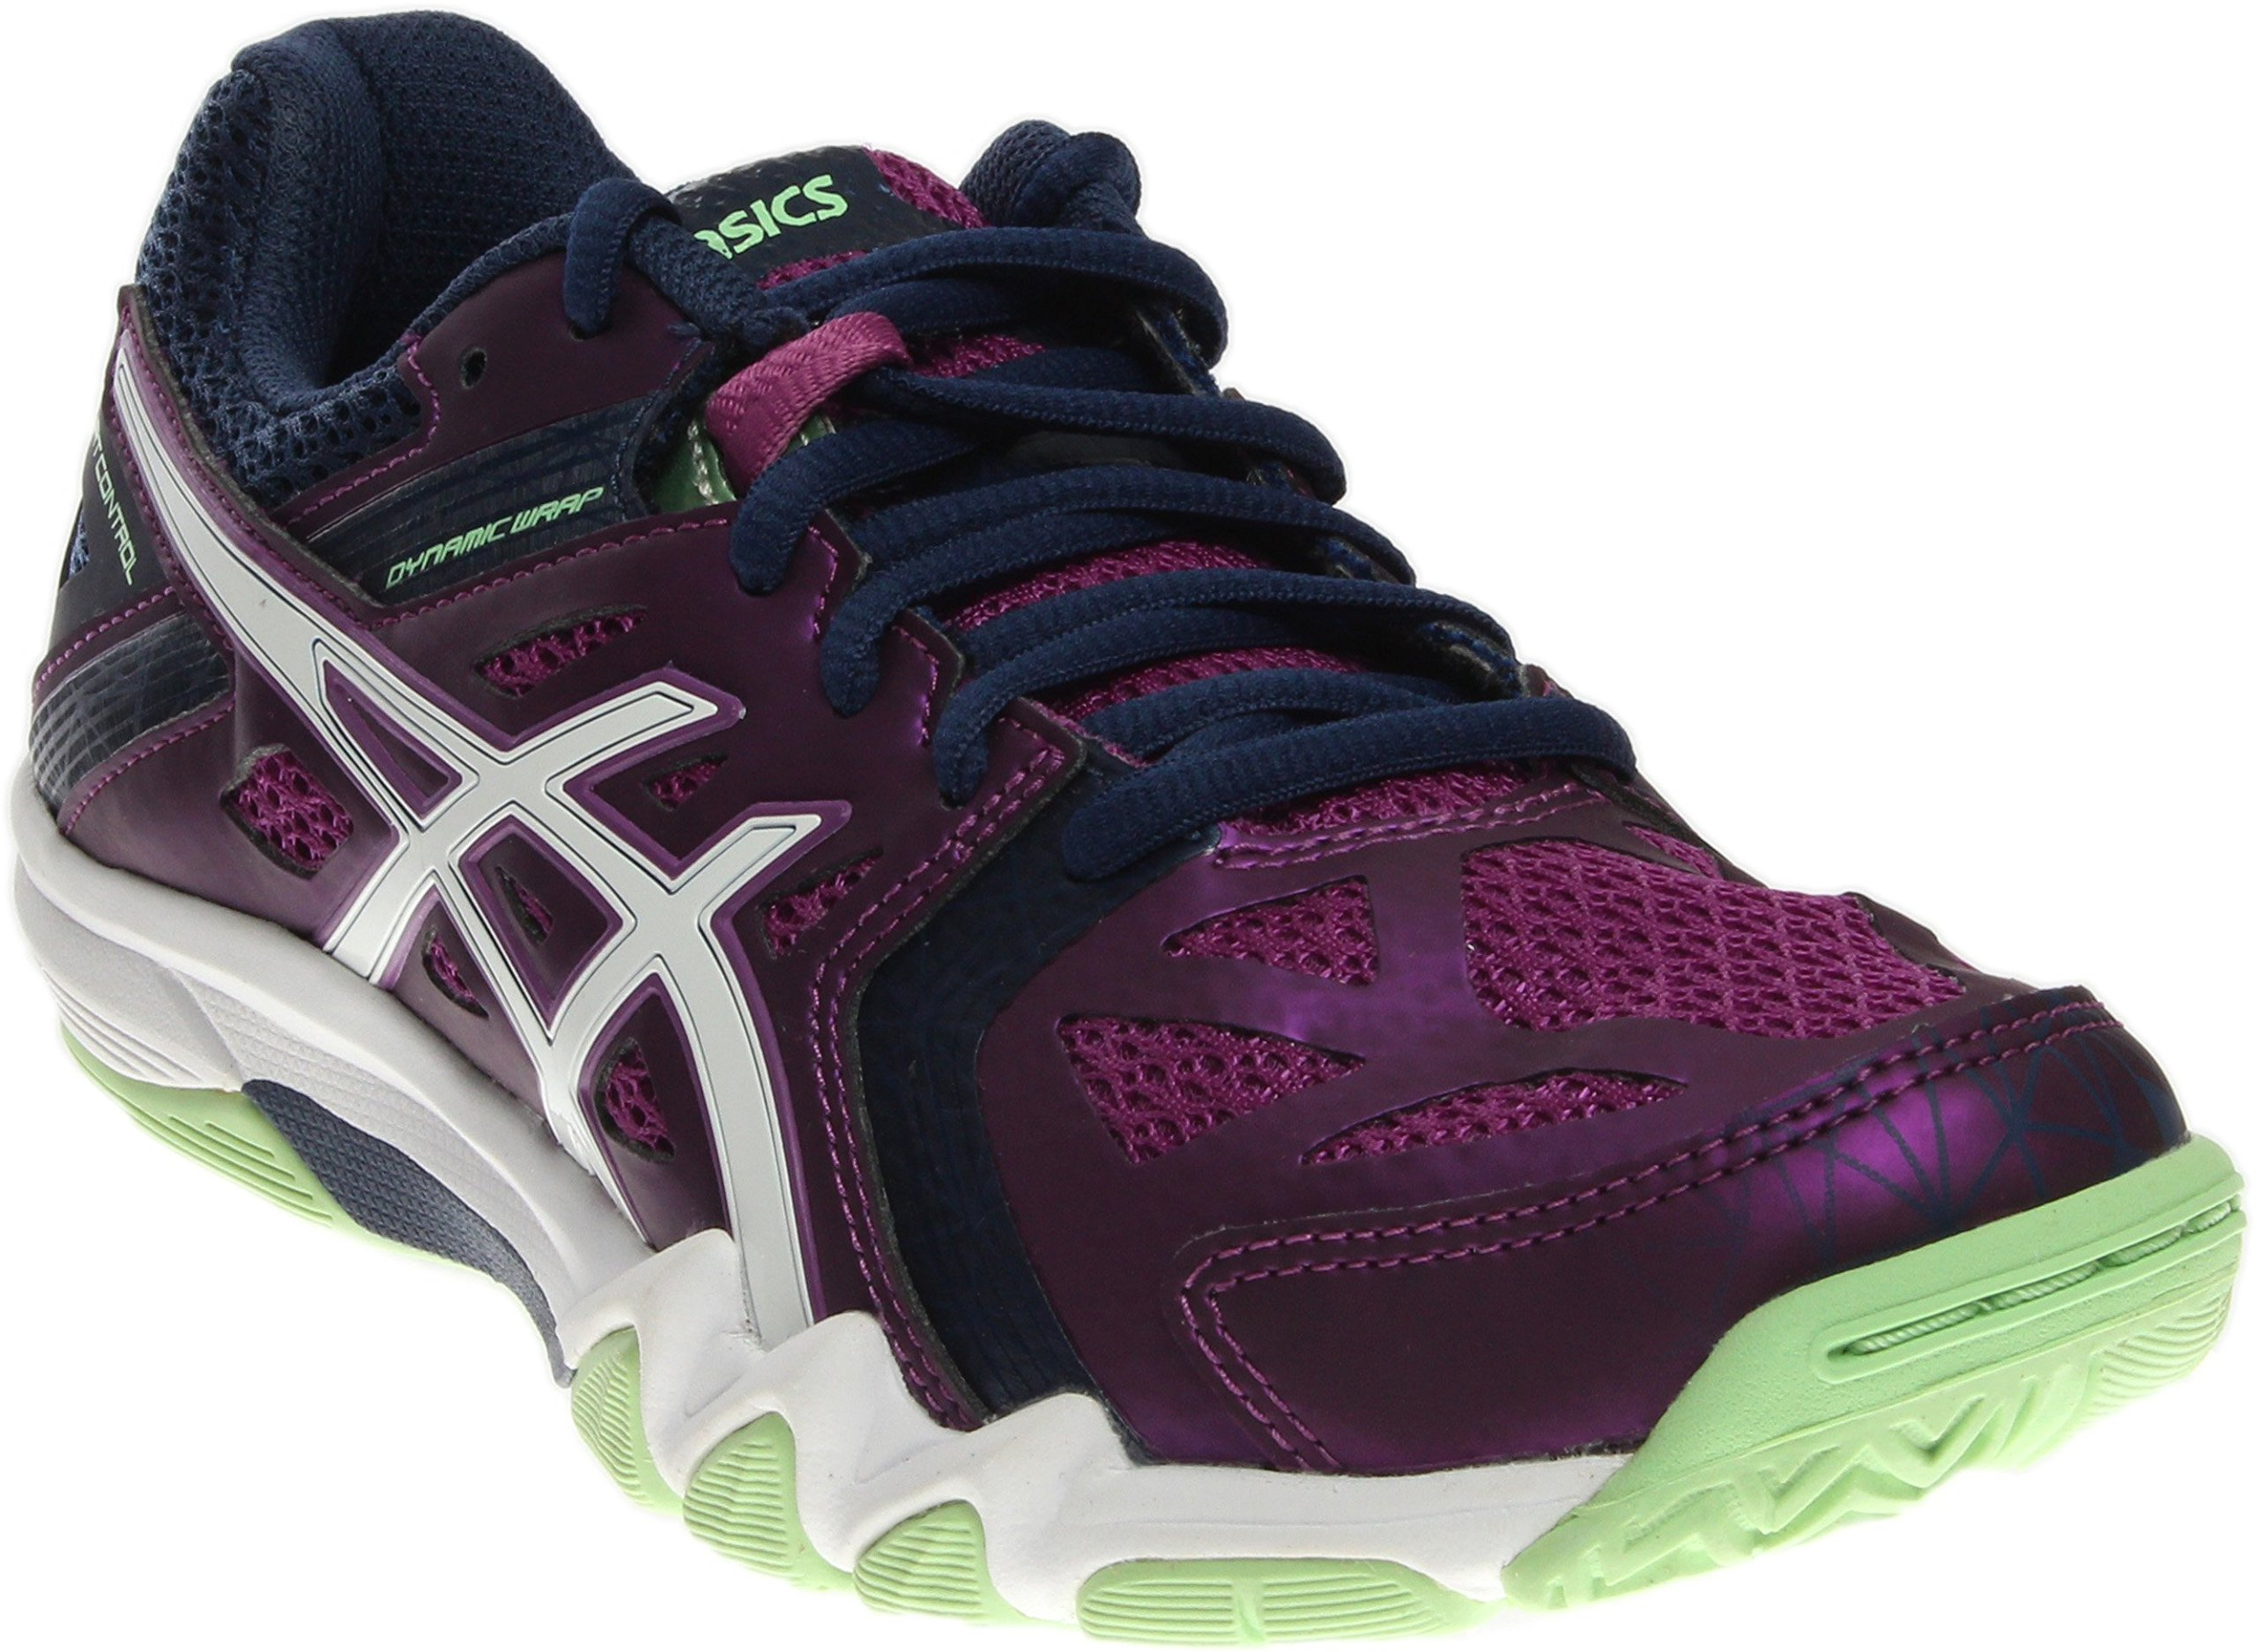 ASICS Women's Gel Court Control Volleyball Shoe, Grape/Navy/White, 6.5 M US